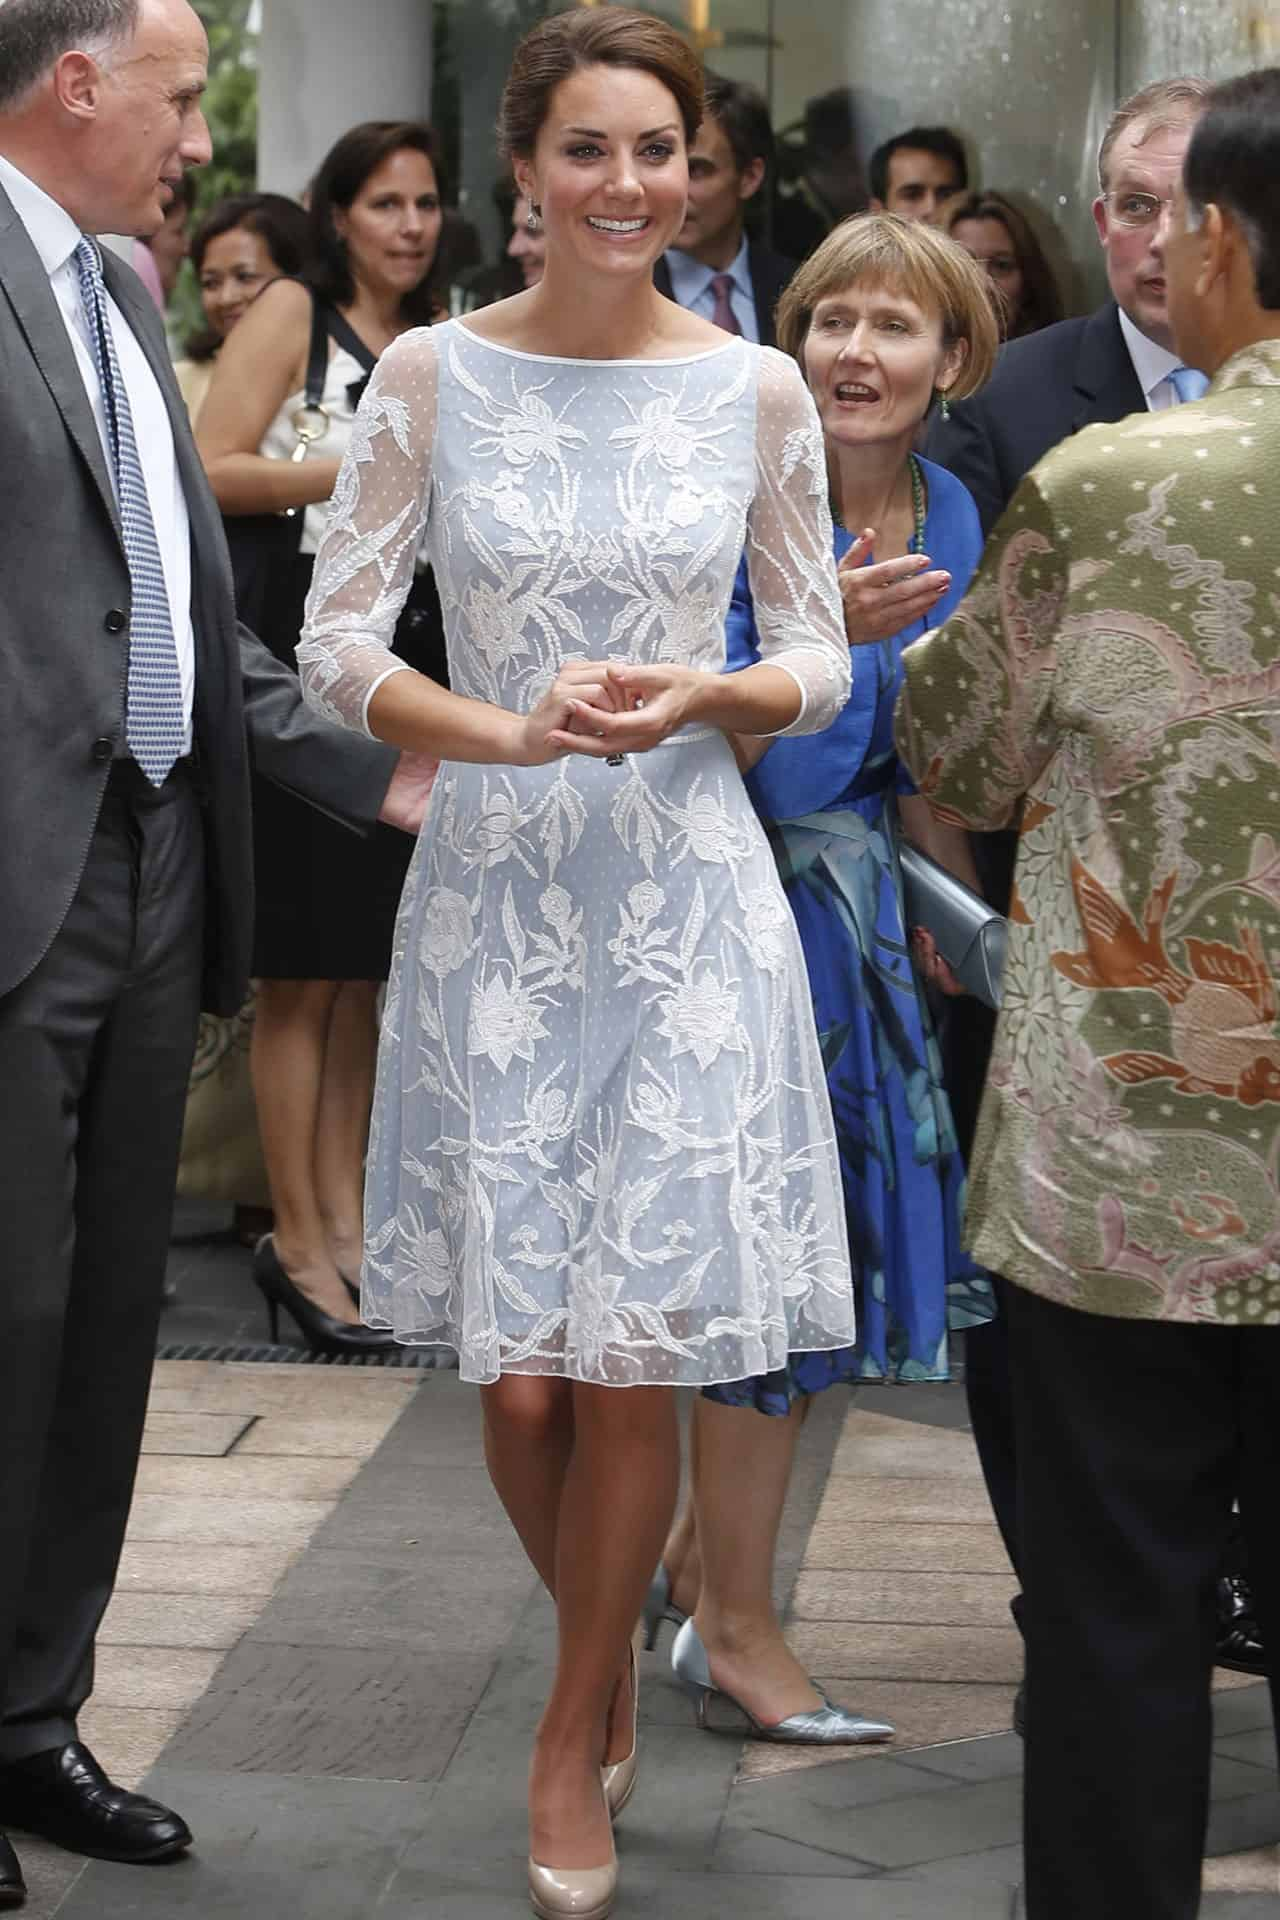 dress-kate-middleton